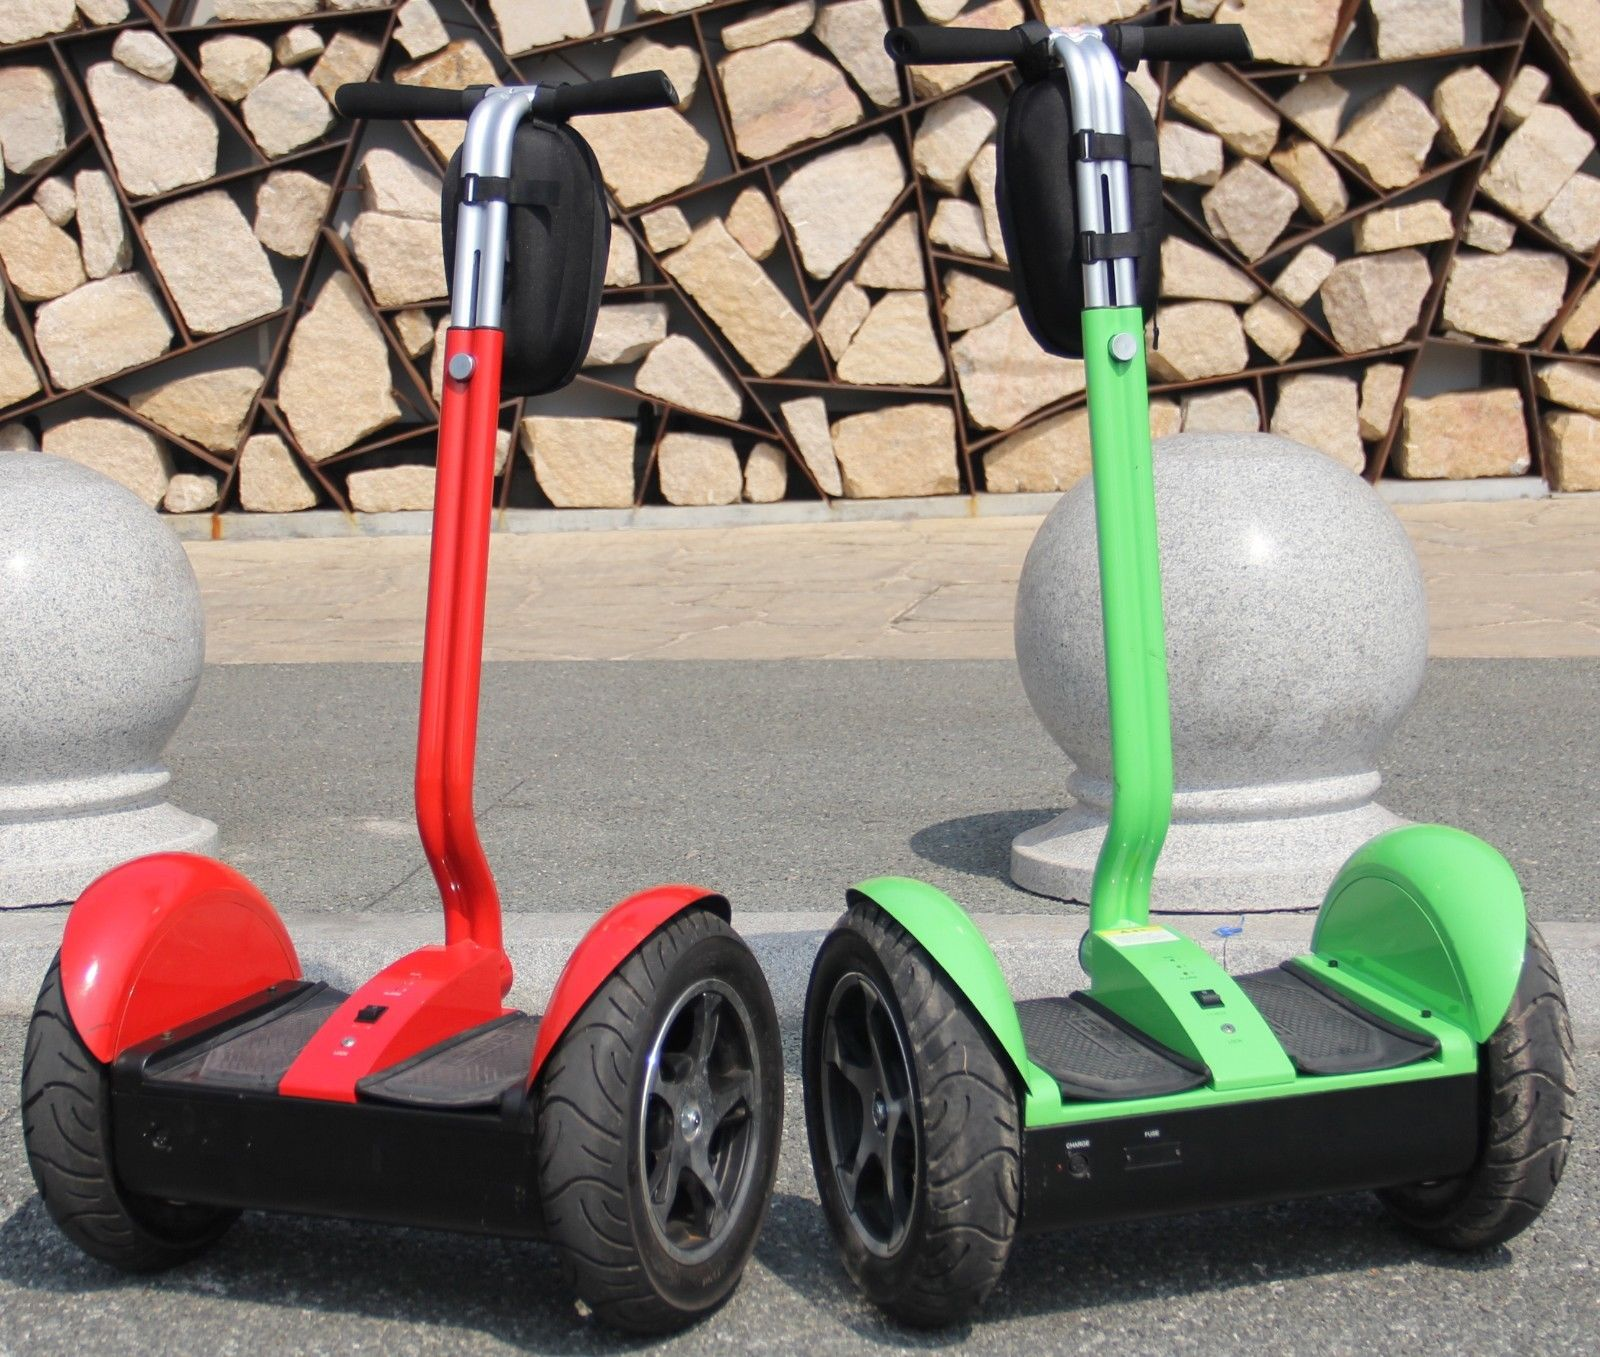 Two Wheel Stand Up Scooter Segway Alternatives